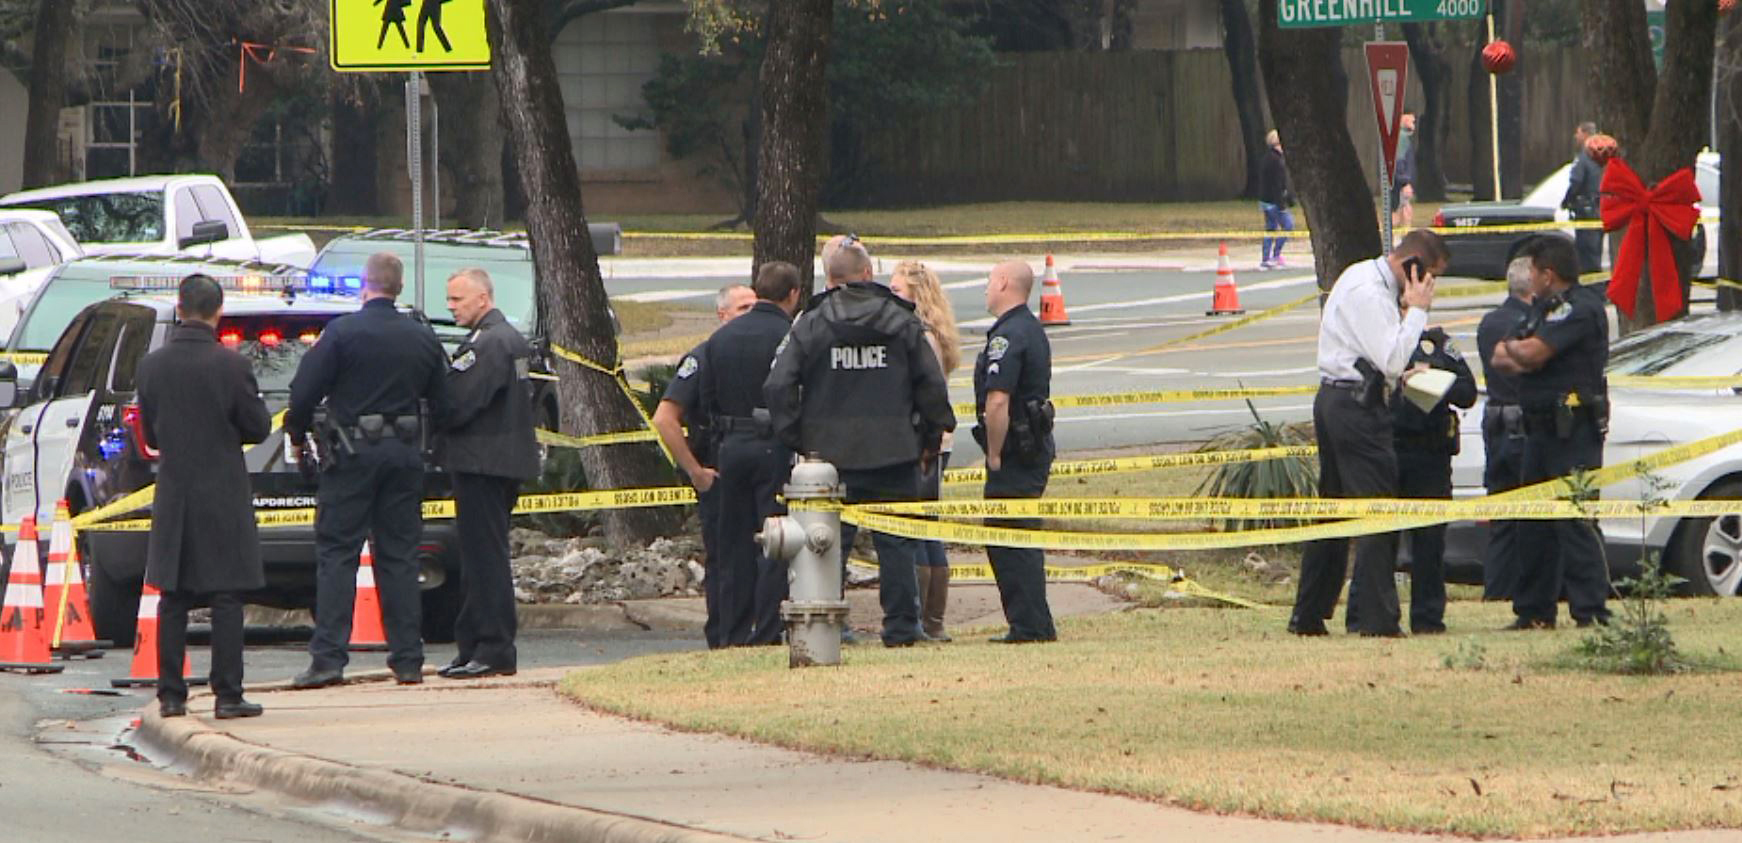 Greenhill Place officer involved shooting_600478